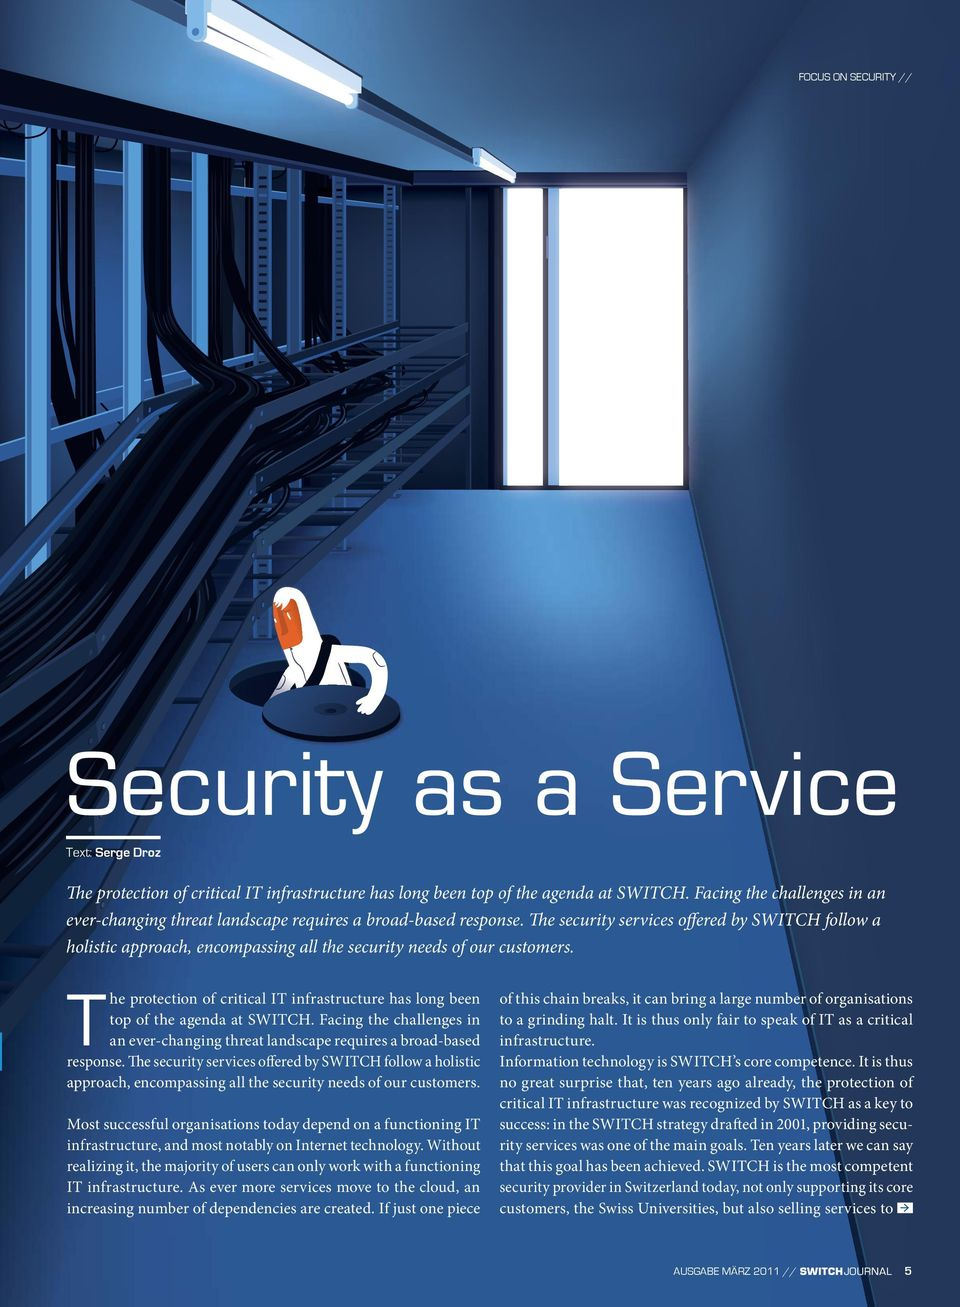 The security services offered by SWITCH follow a holistic approach, encompassing all the security needs of our customers.